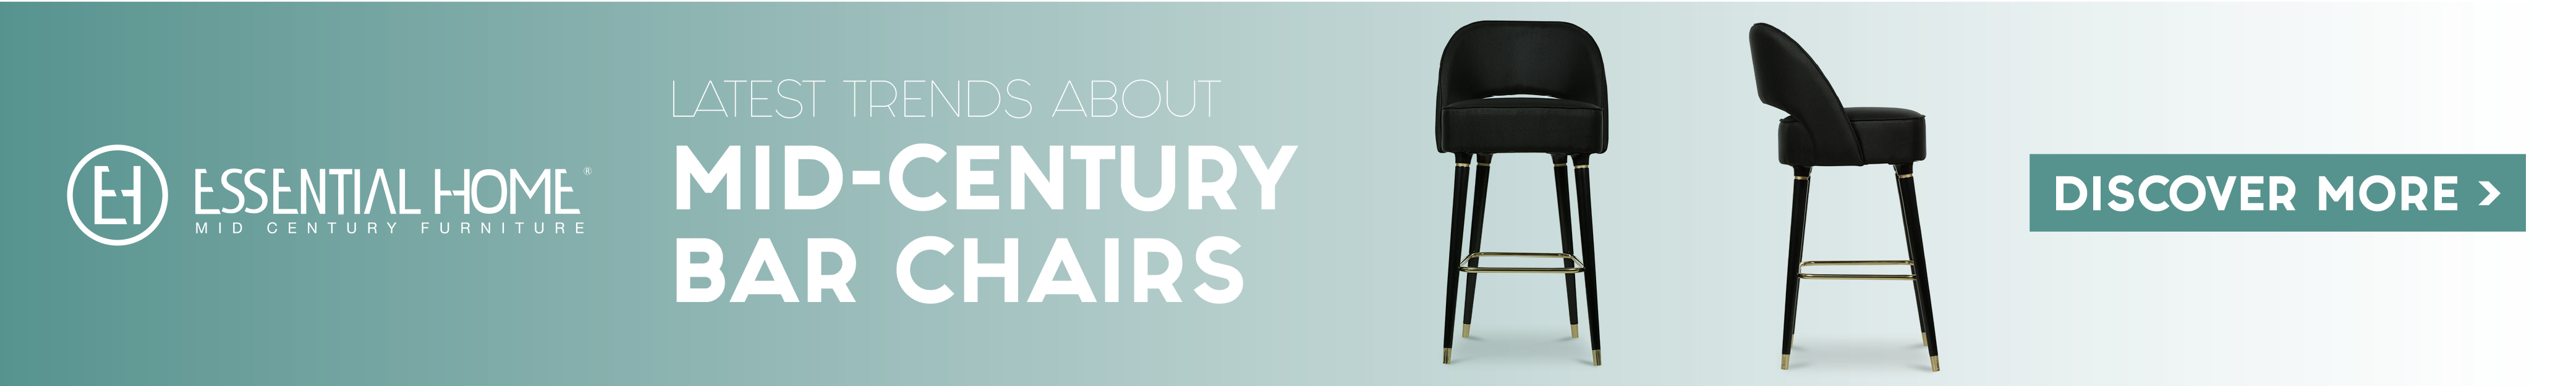 eh-collins-bar-chair mid-century Covet Valley: The Mid-Century Capsule That Will Make You Travel Back In Time Product EH4 1